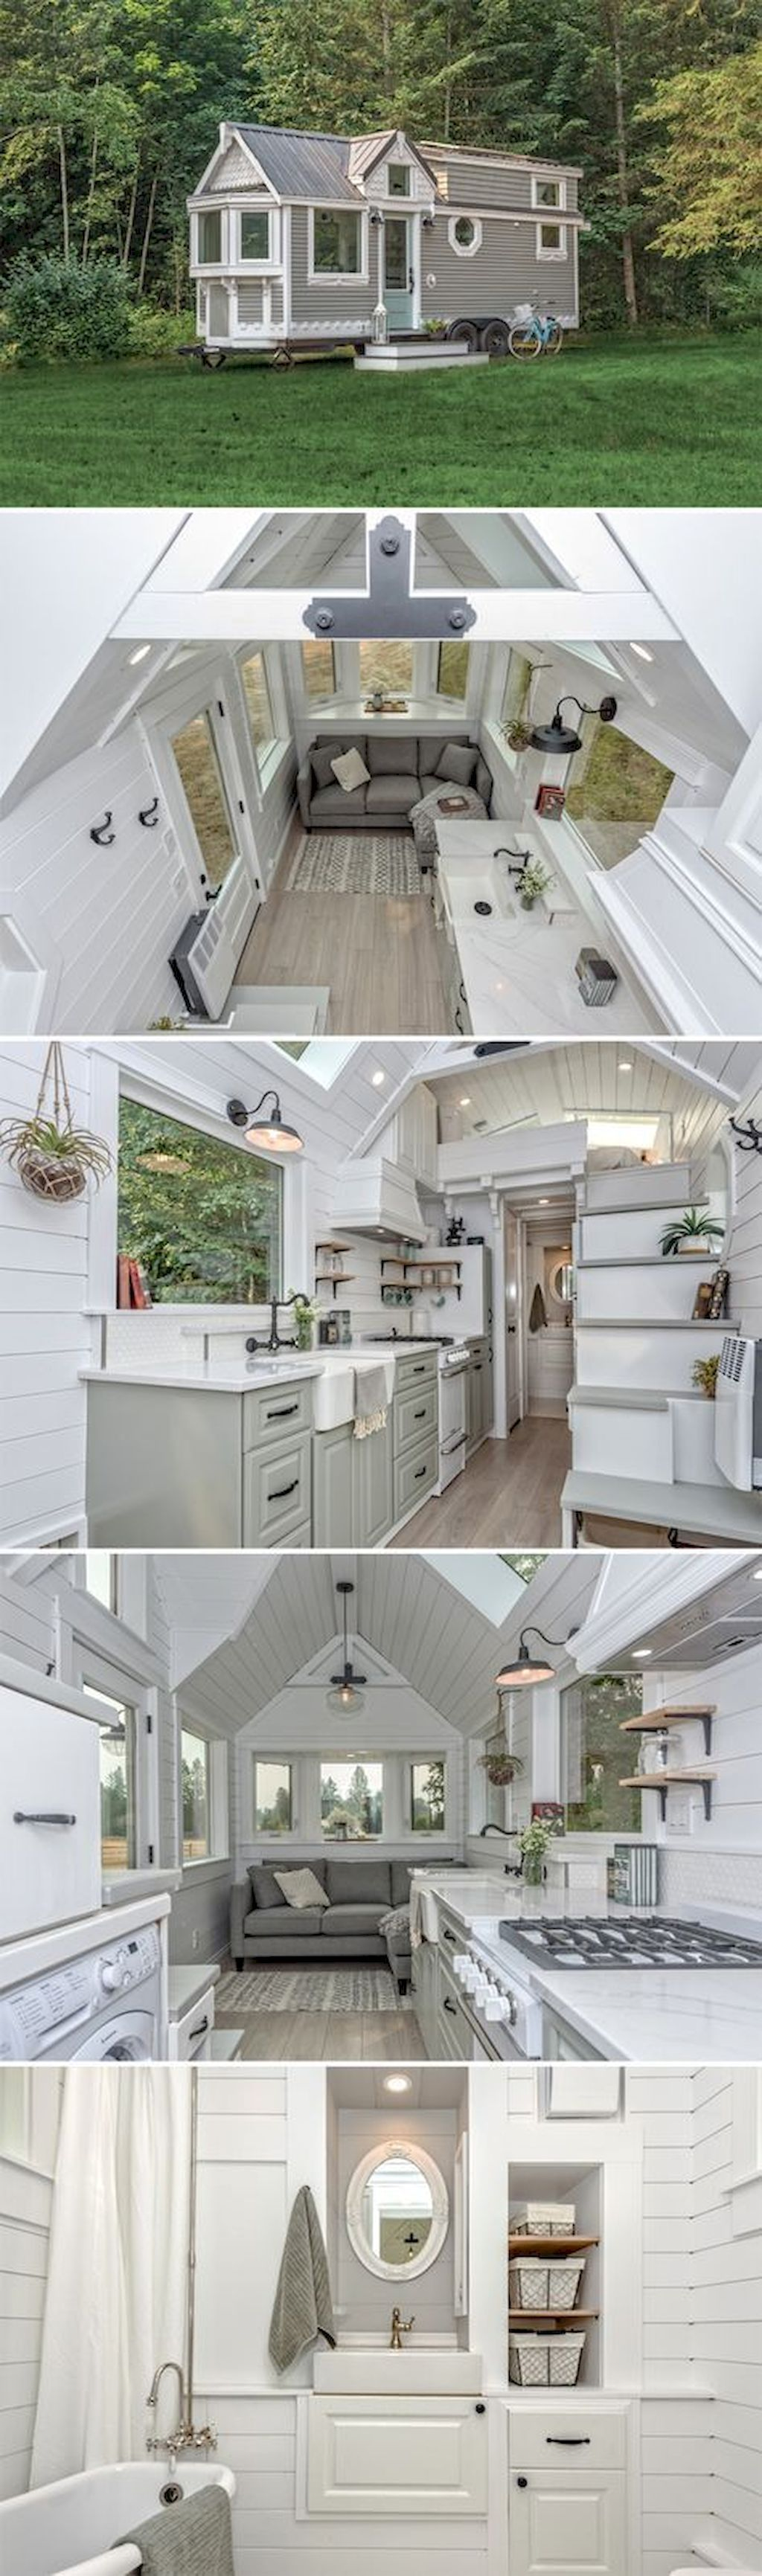 32 Smart Tiny House Ideas And Organizations With Images House Built House Tiny House Design